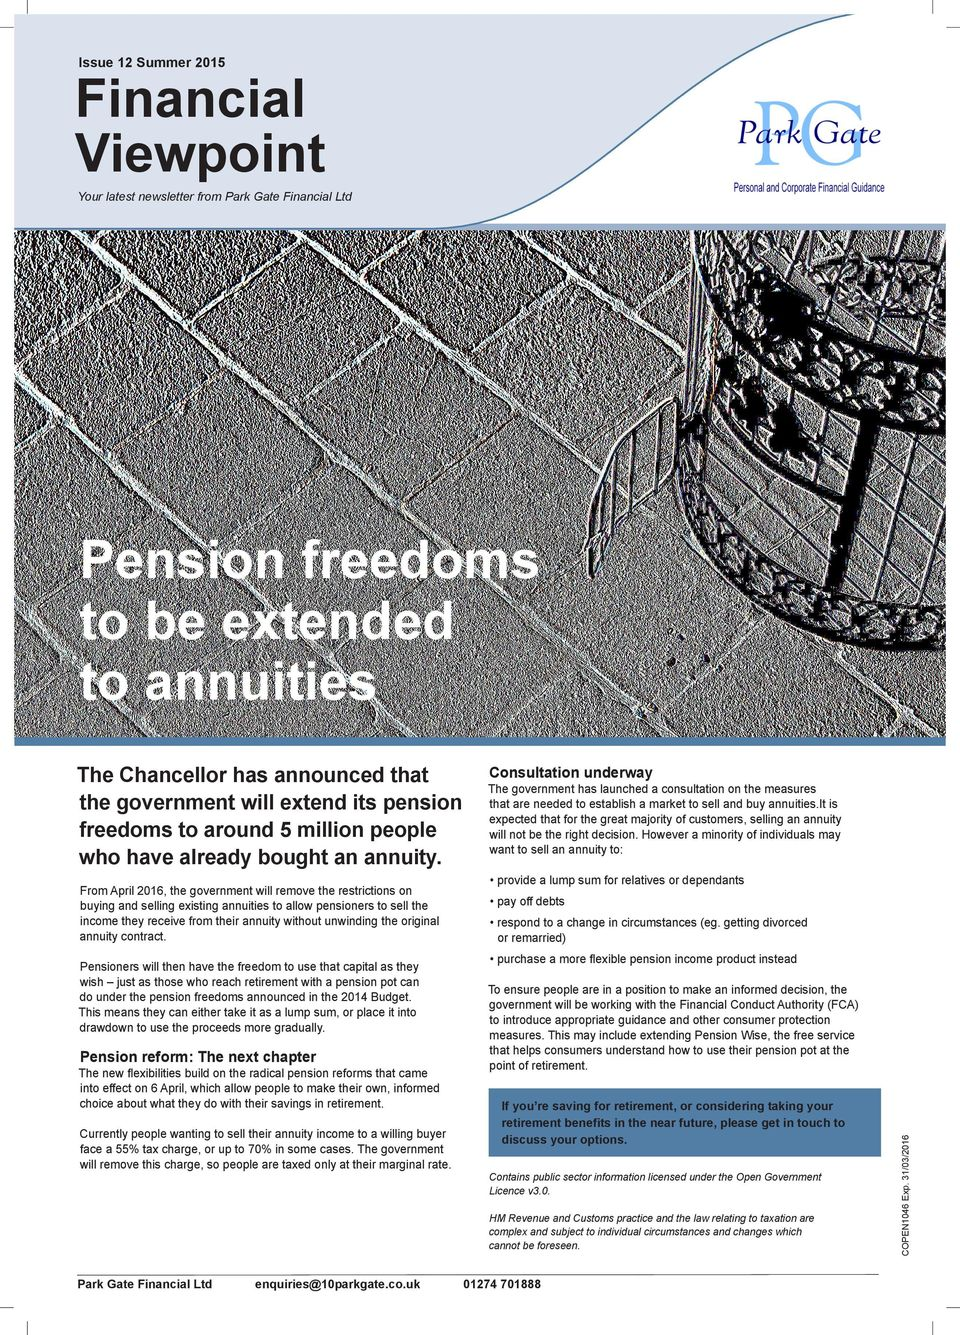 Pensioners will then have the freedom to use that capital as they wish just as those who reach retirement with a pension pot can do under the pension freedoms announced in the 2014 Budget.